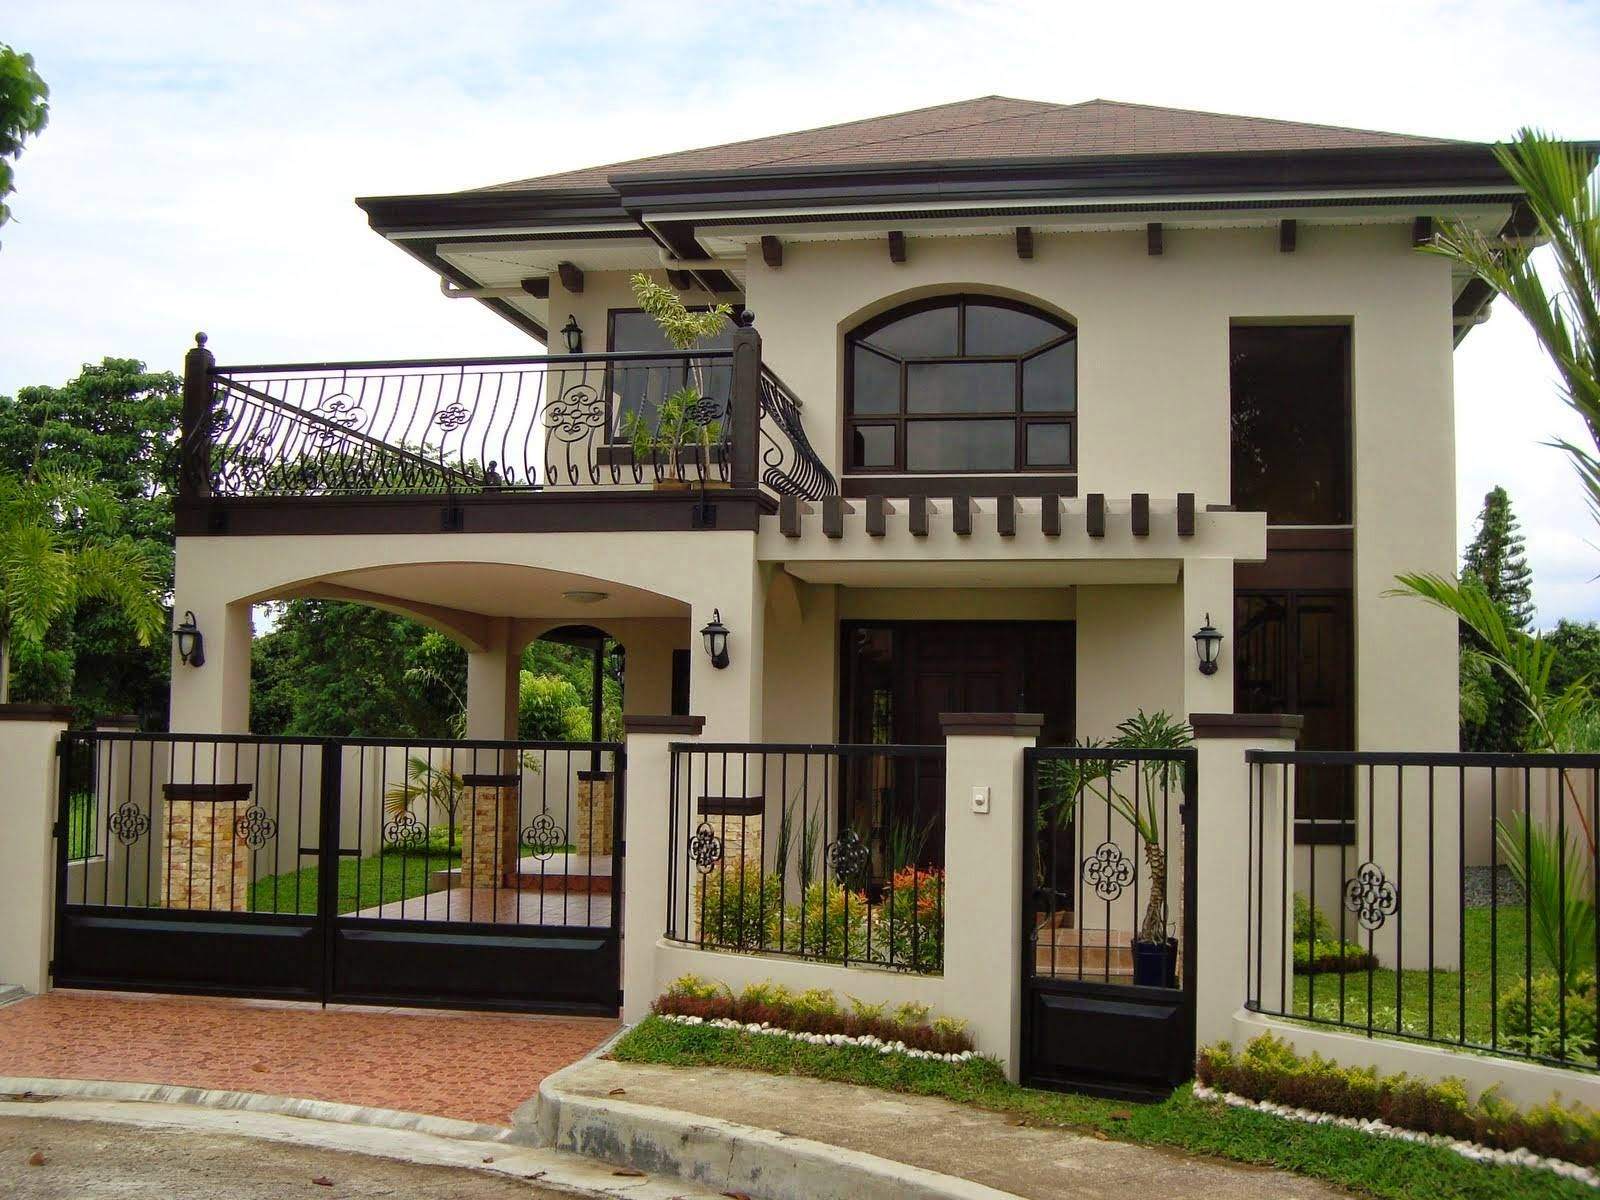 storey house design in the philippines and home also pin by beth garrett on pinterest plans rh